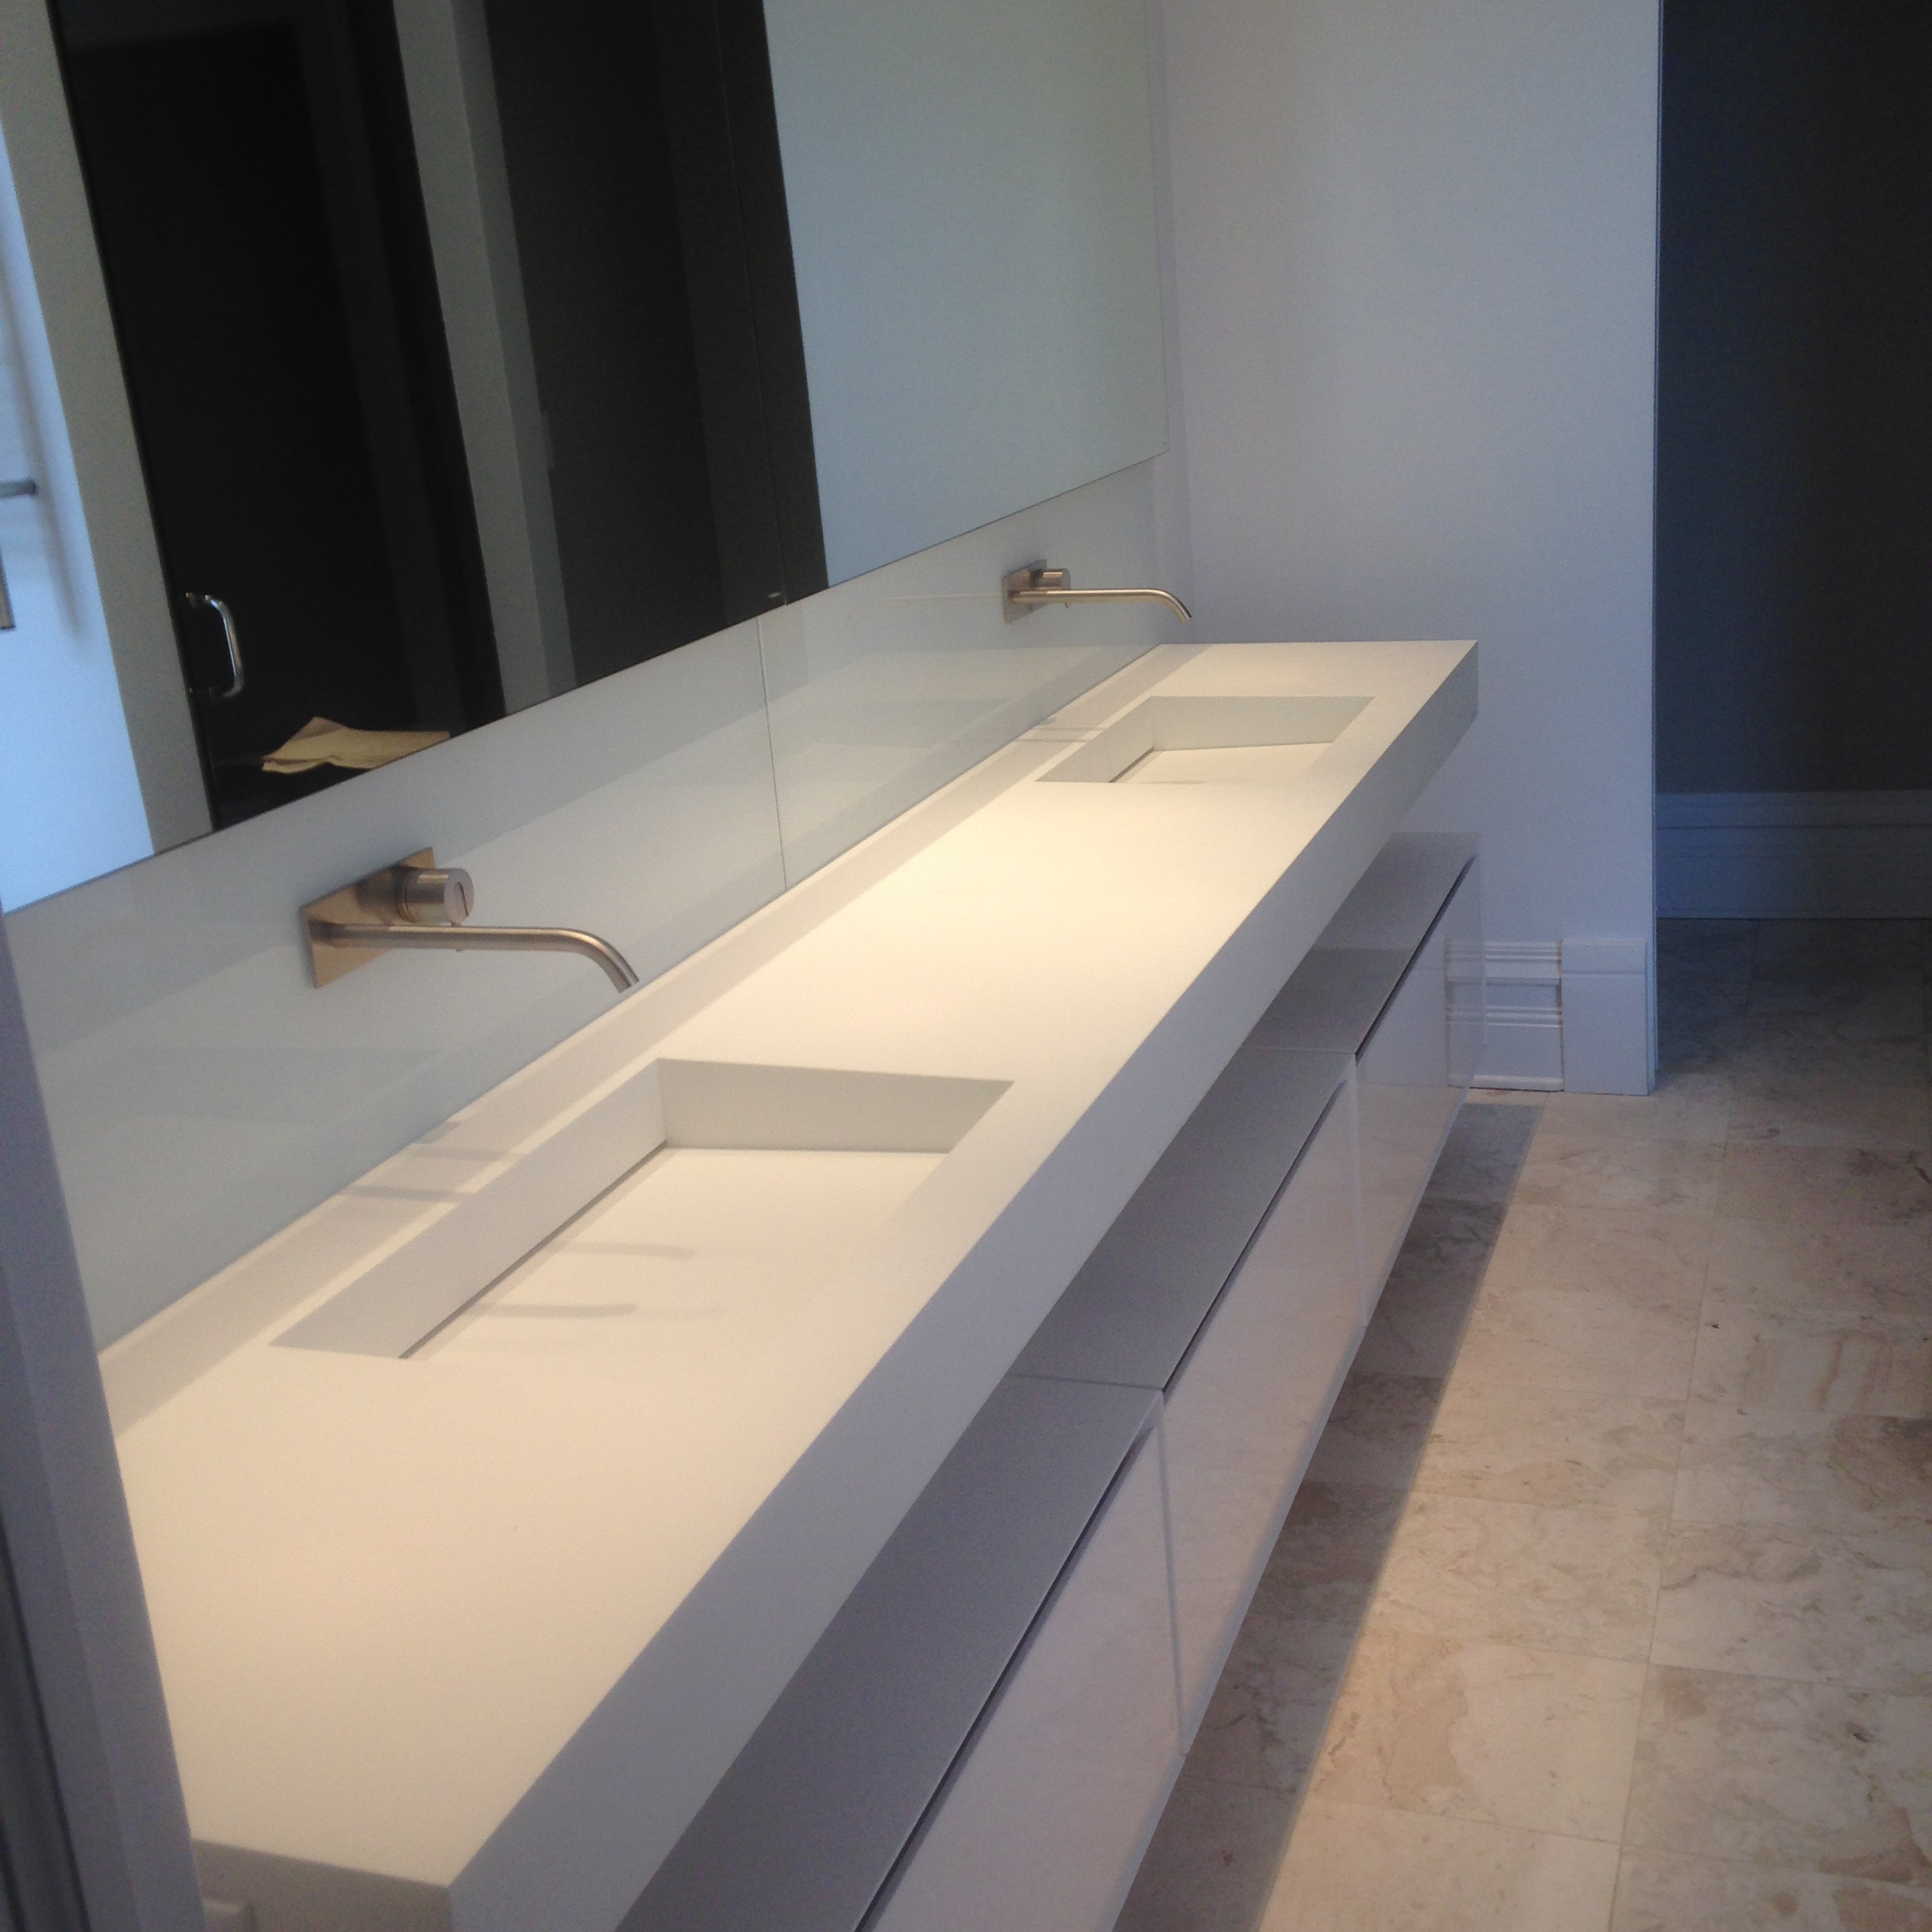 Vanity Tile Top : Custom fabrication kitchen and vanity tops titan